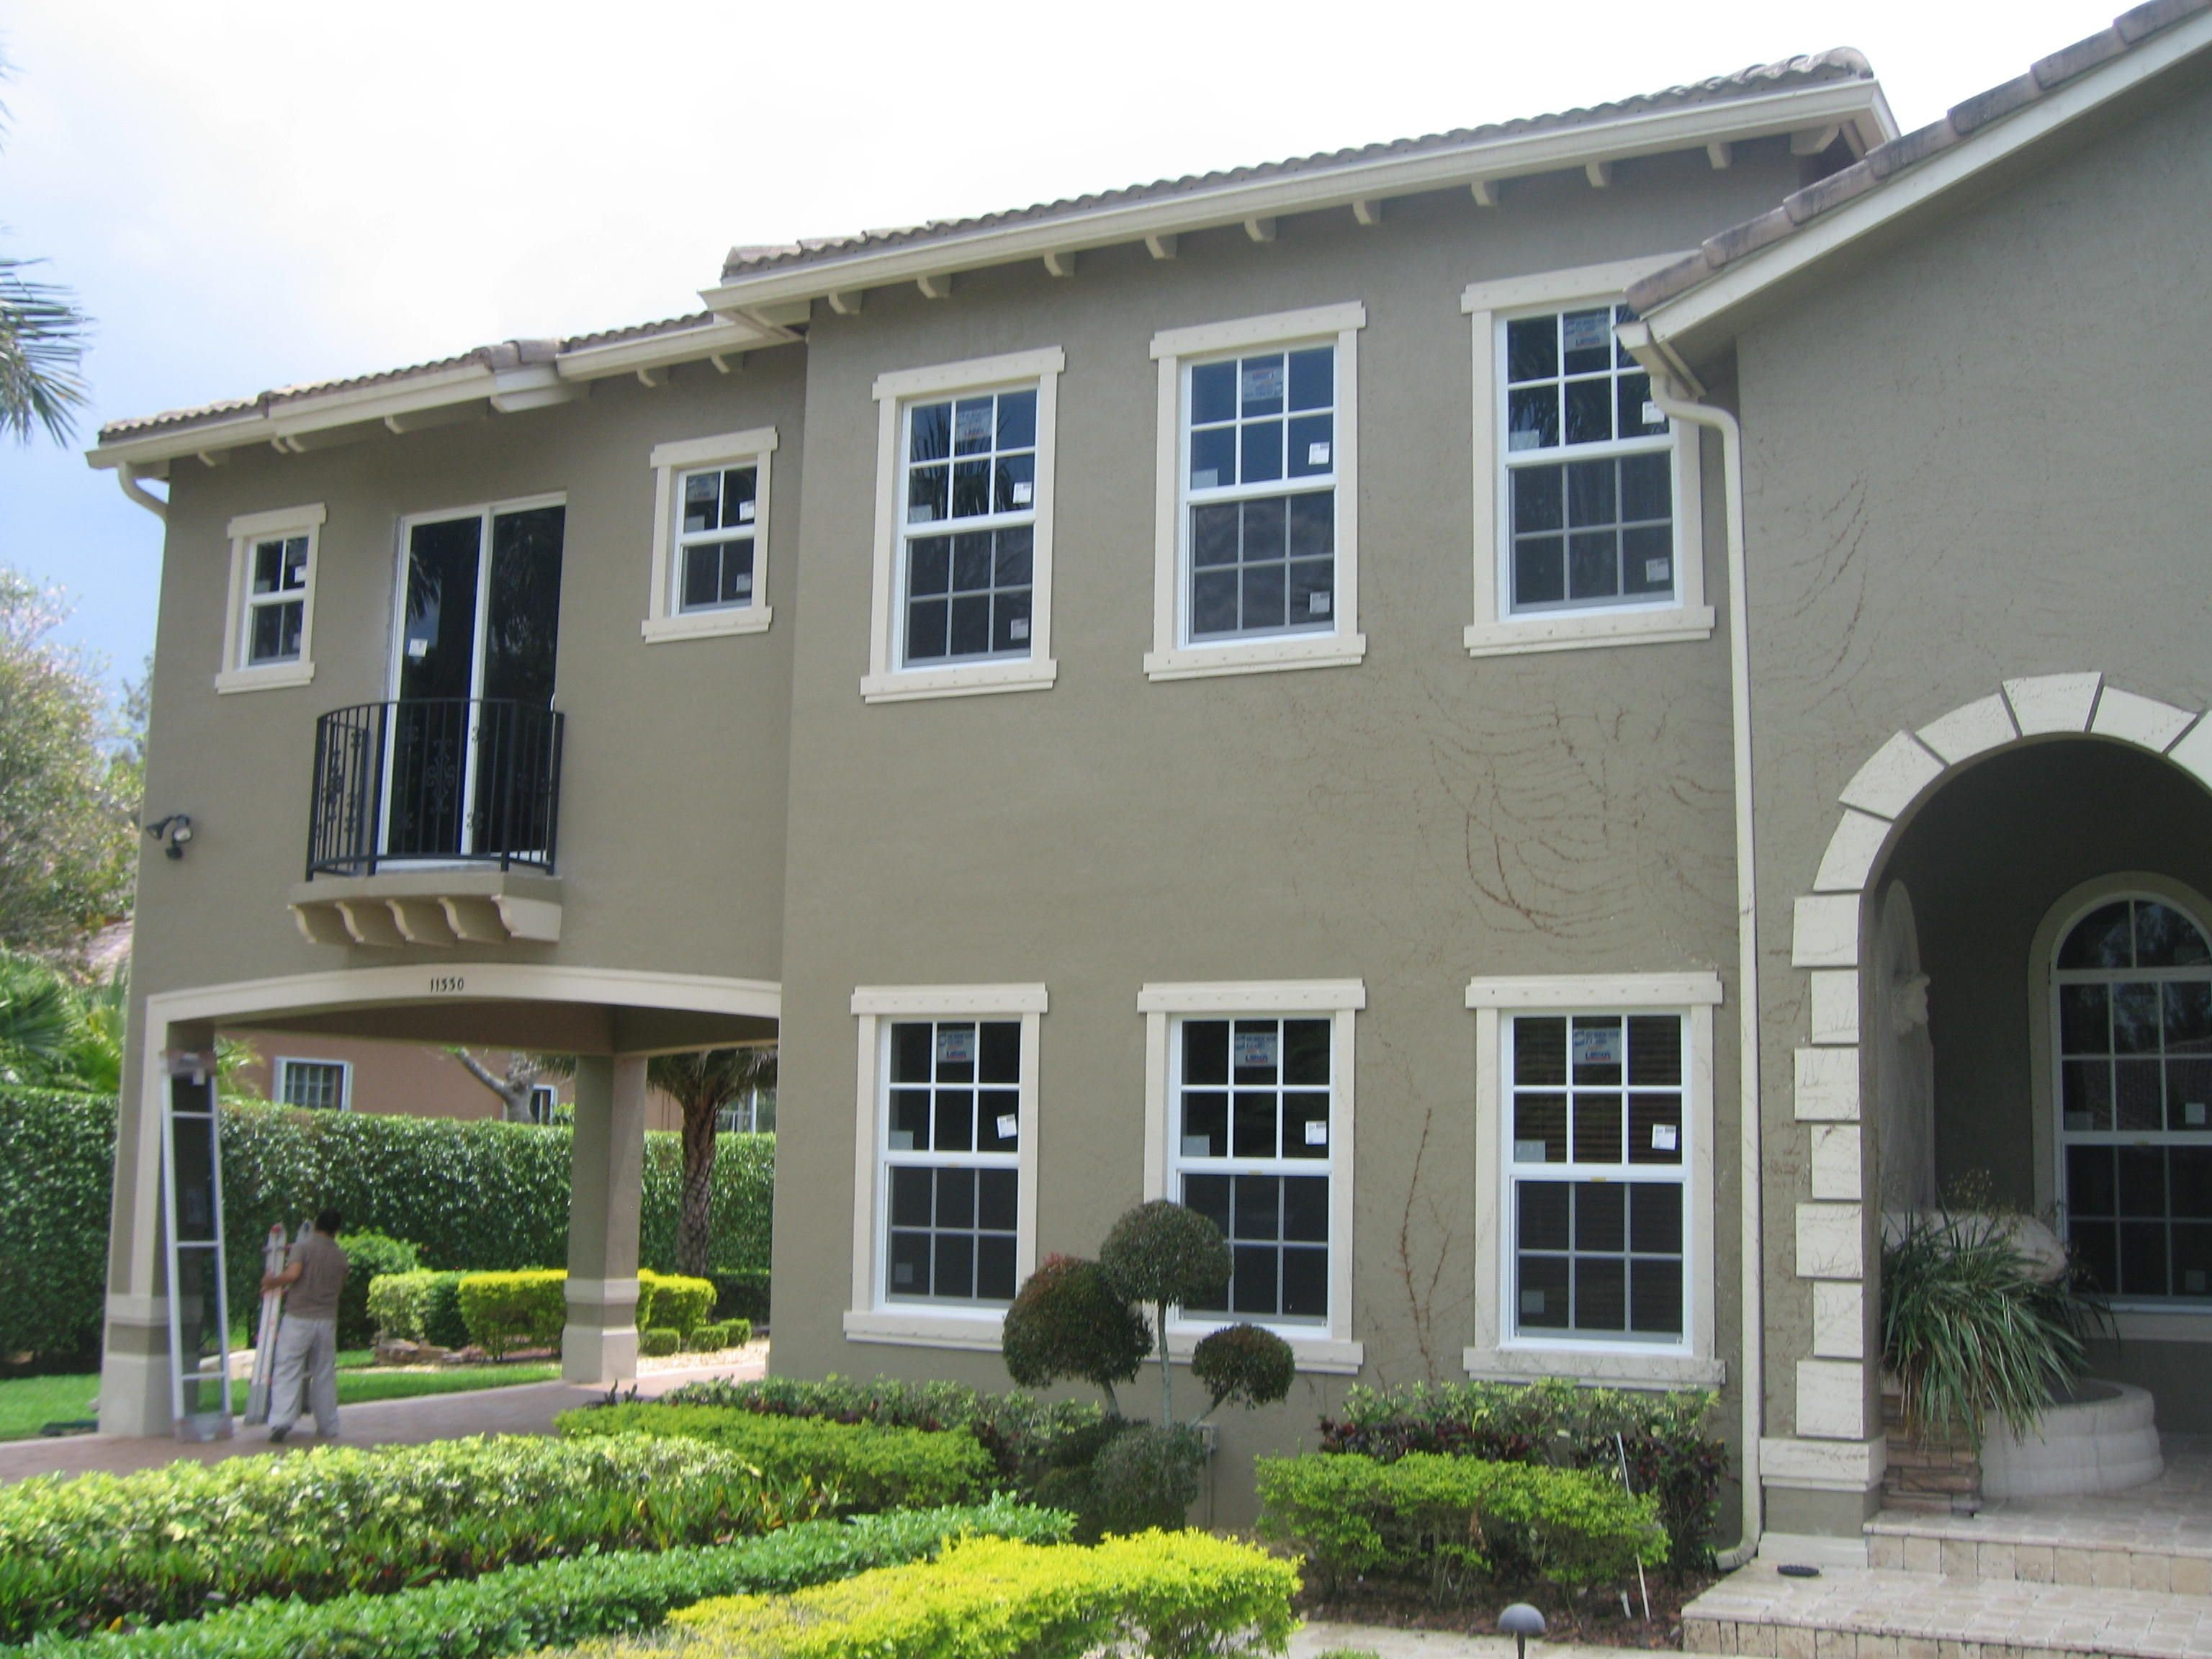 Accordian shutters can be installed on wood masonry